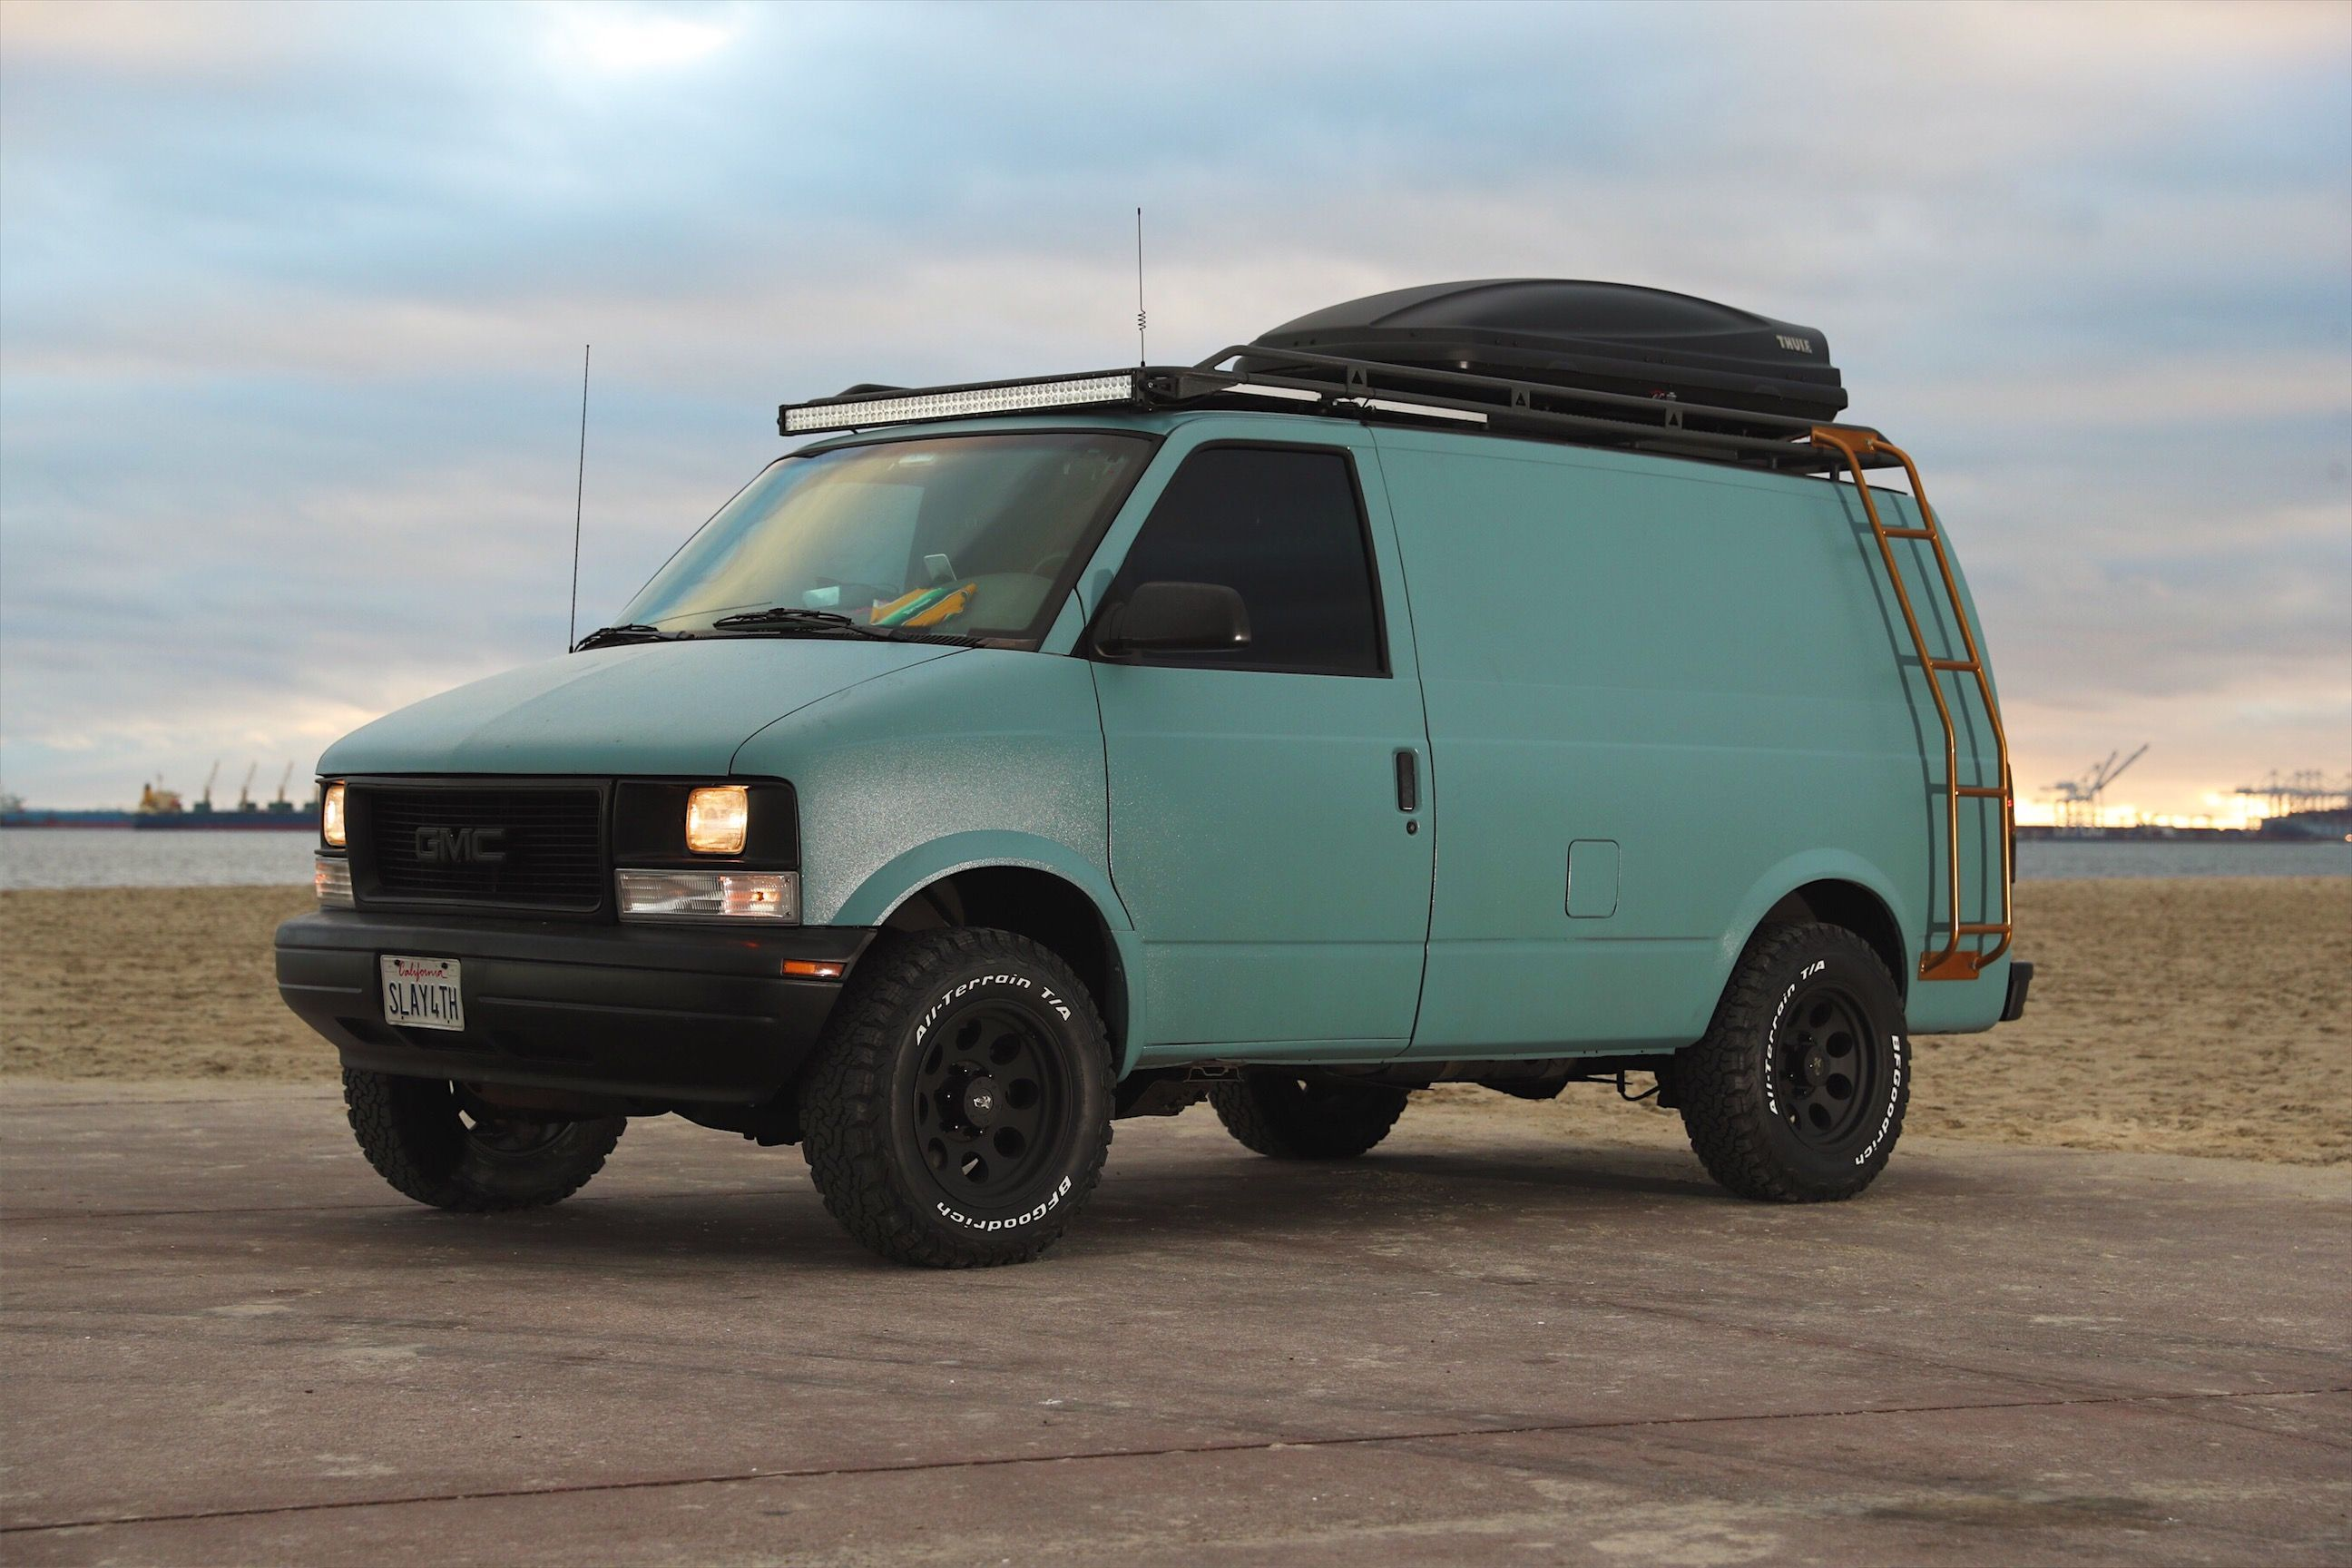 Chevy Express Awd Lifted - Exploring Mars